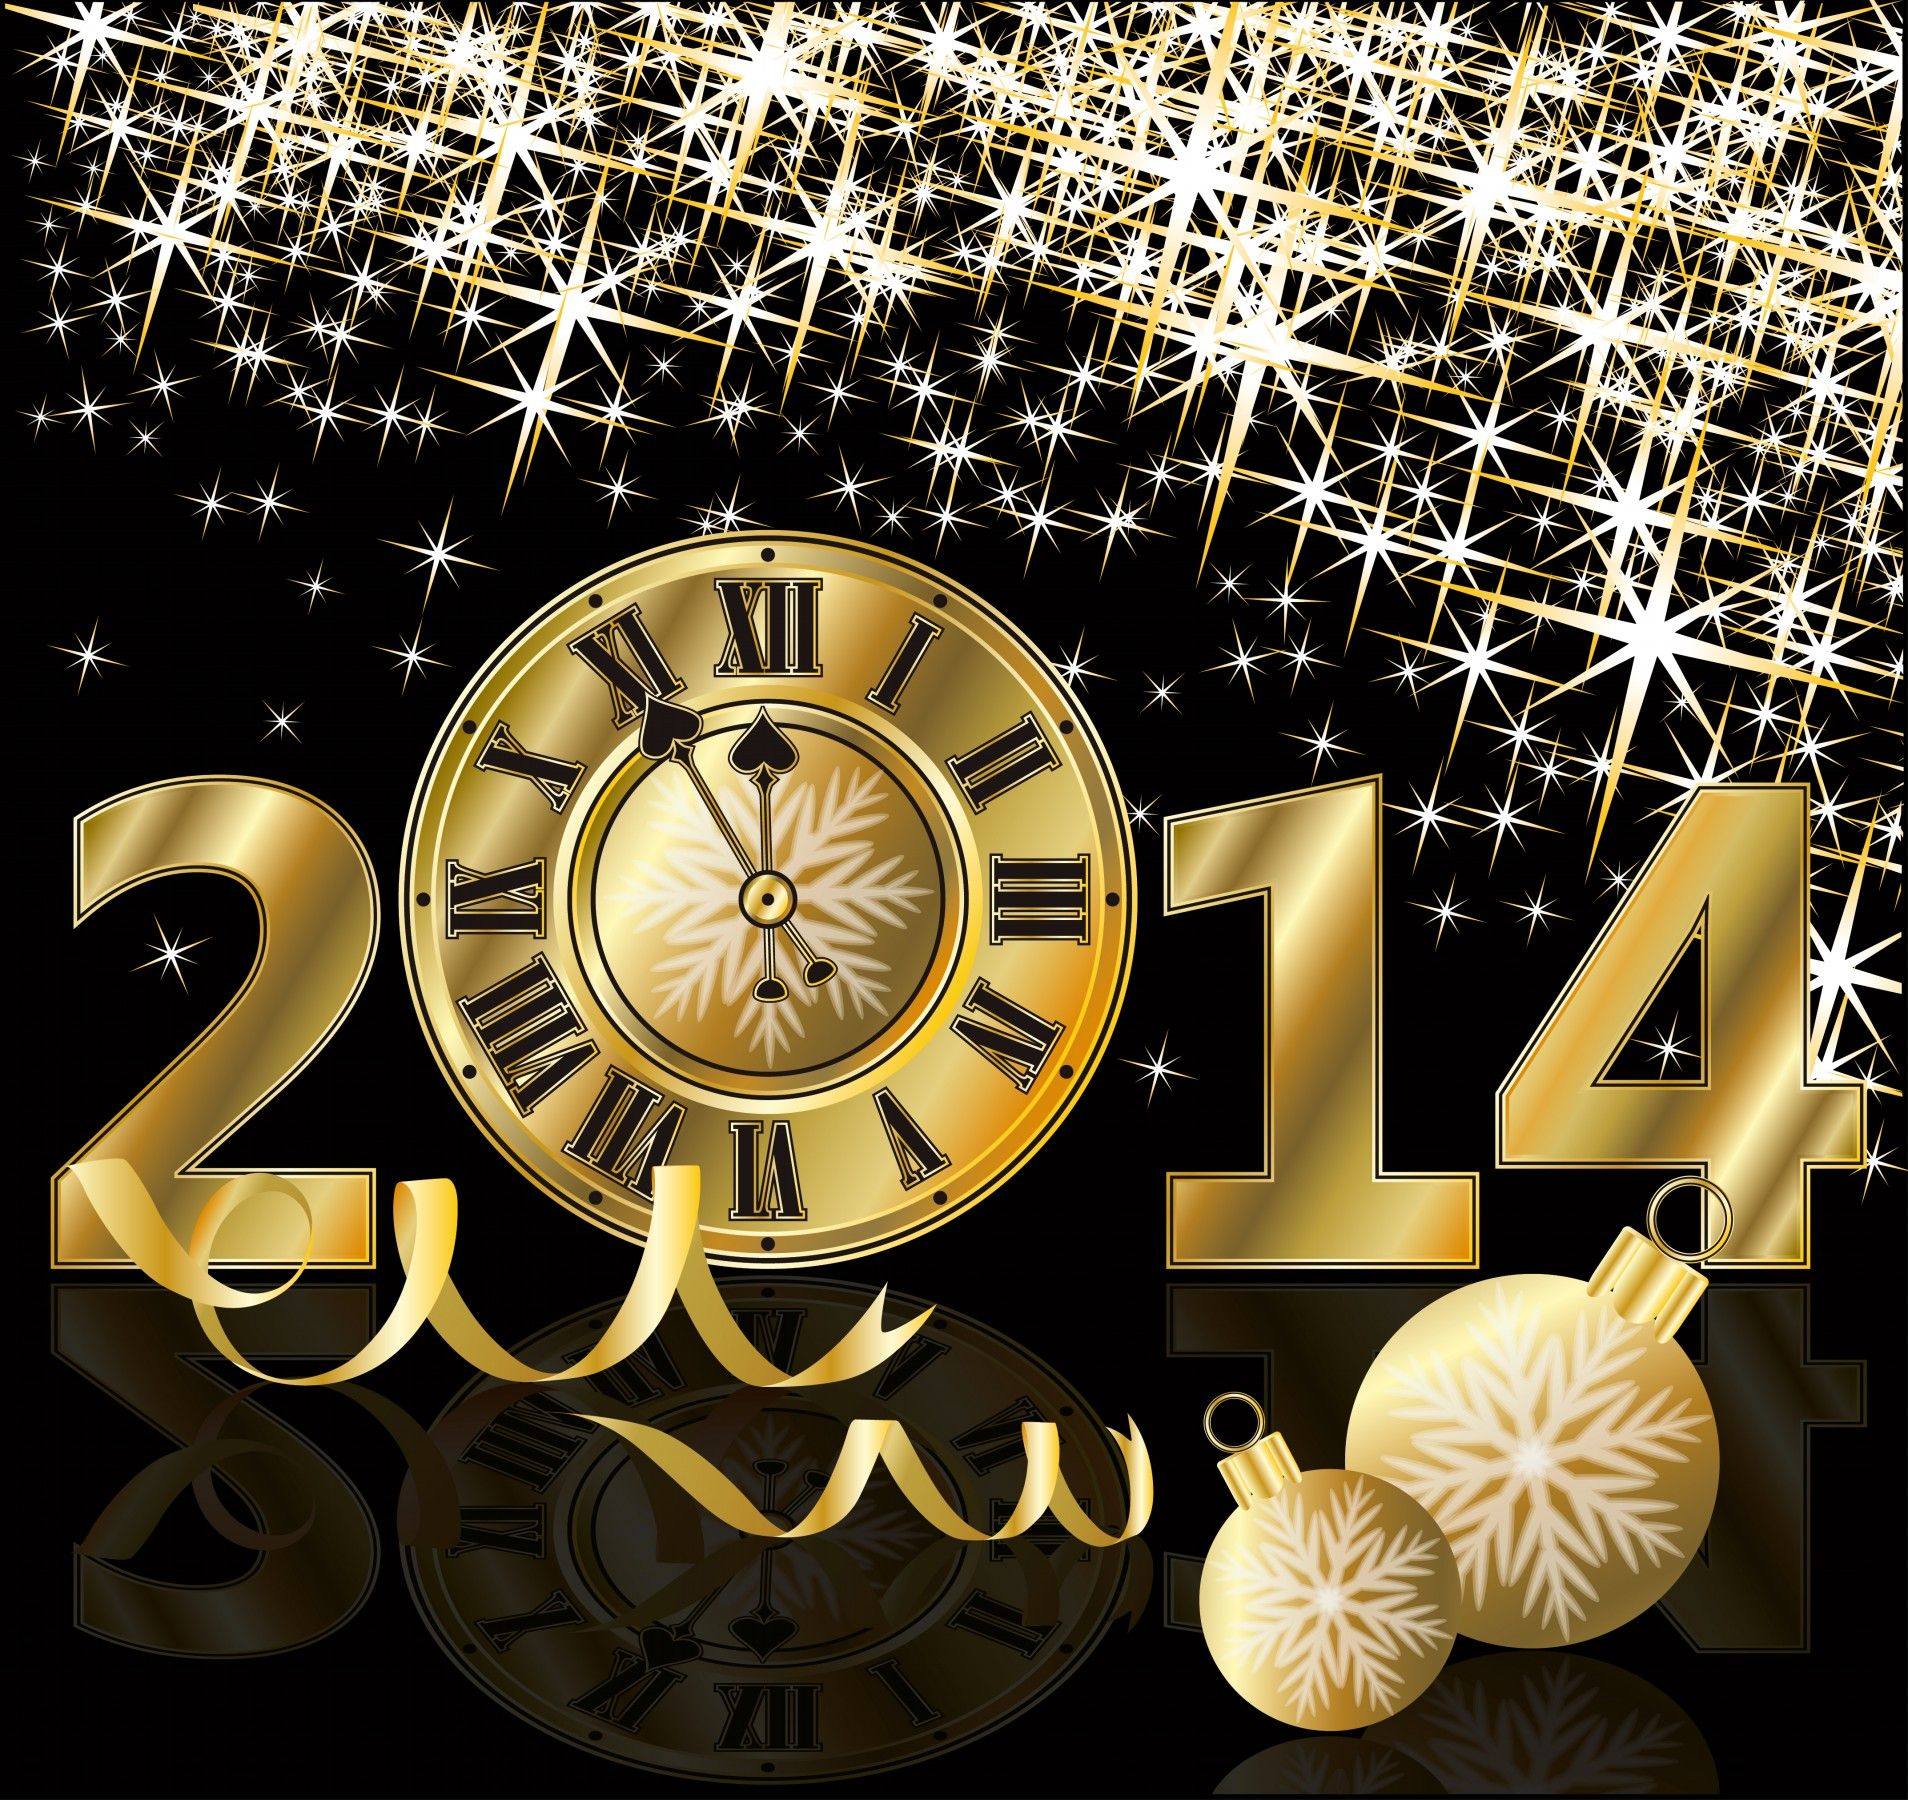 Happy new year 2014 greeting cards days months holidays etc happy new year 2014 greeting cards m4hsunfo